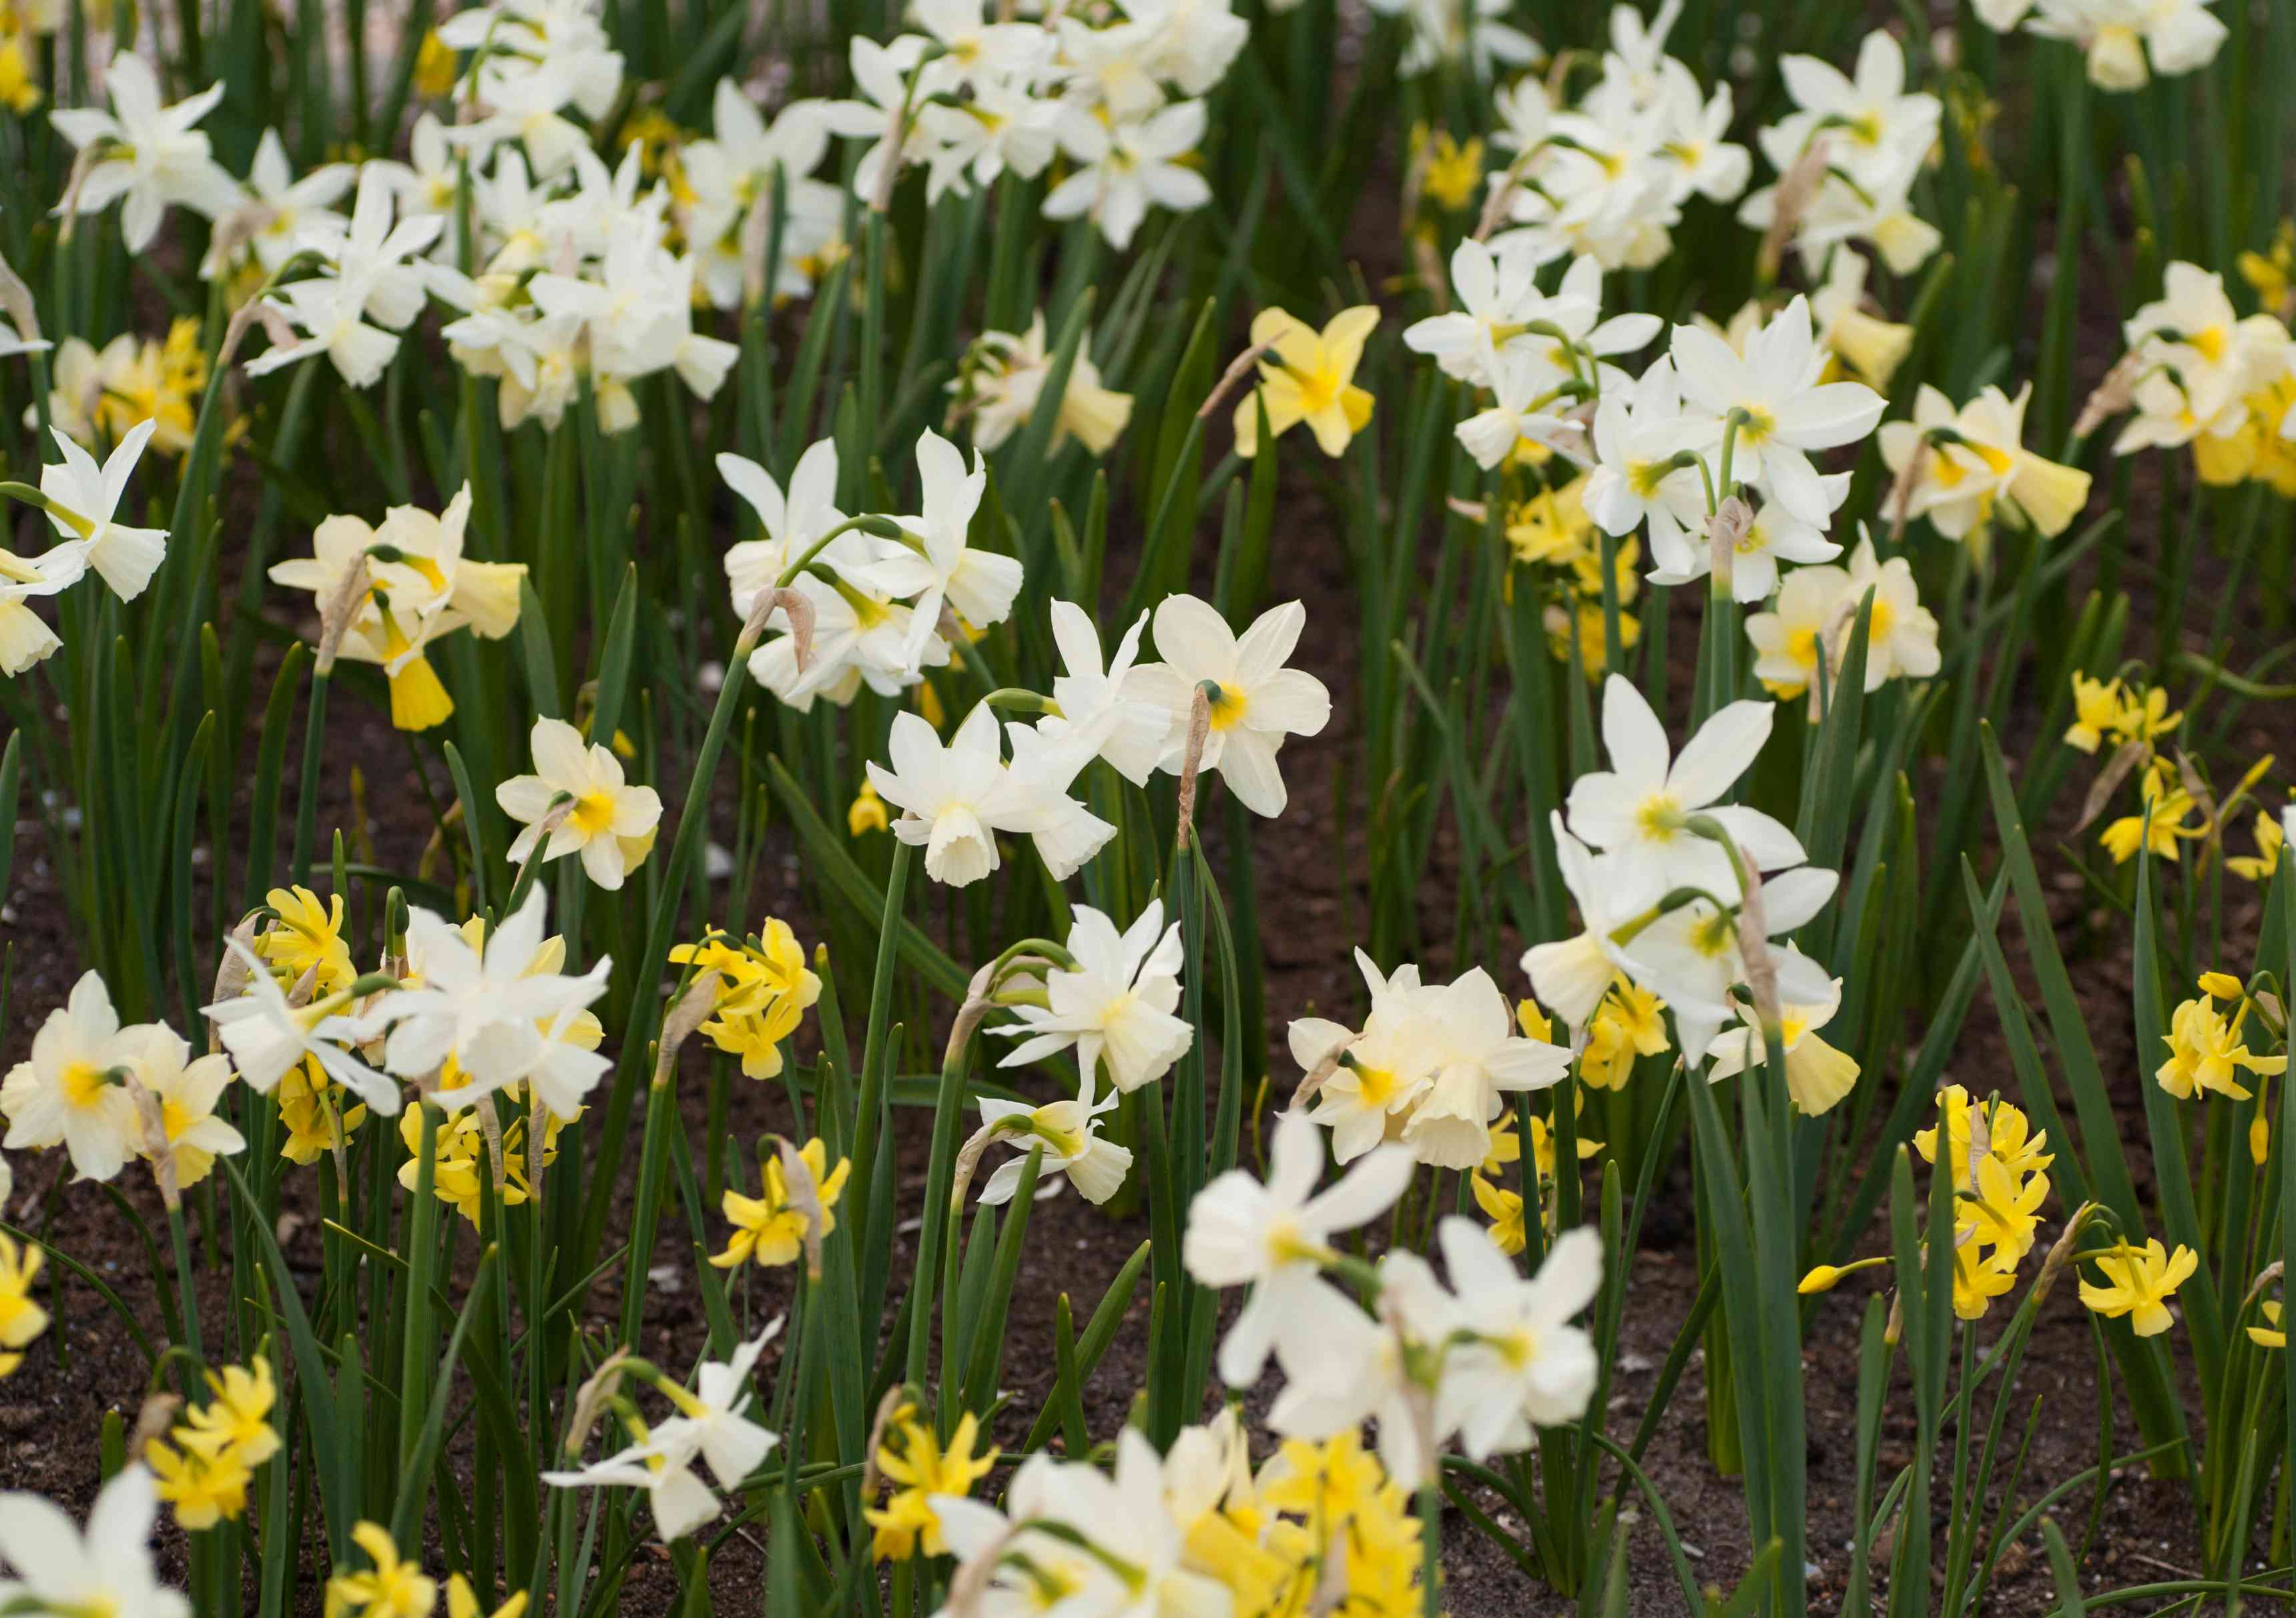 Triandrus daffodil with white flowers and yellow hanging bells